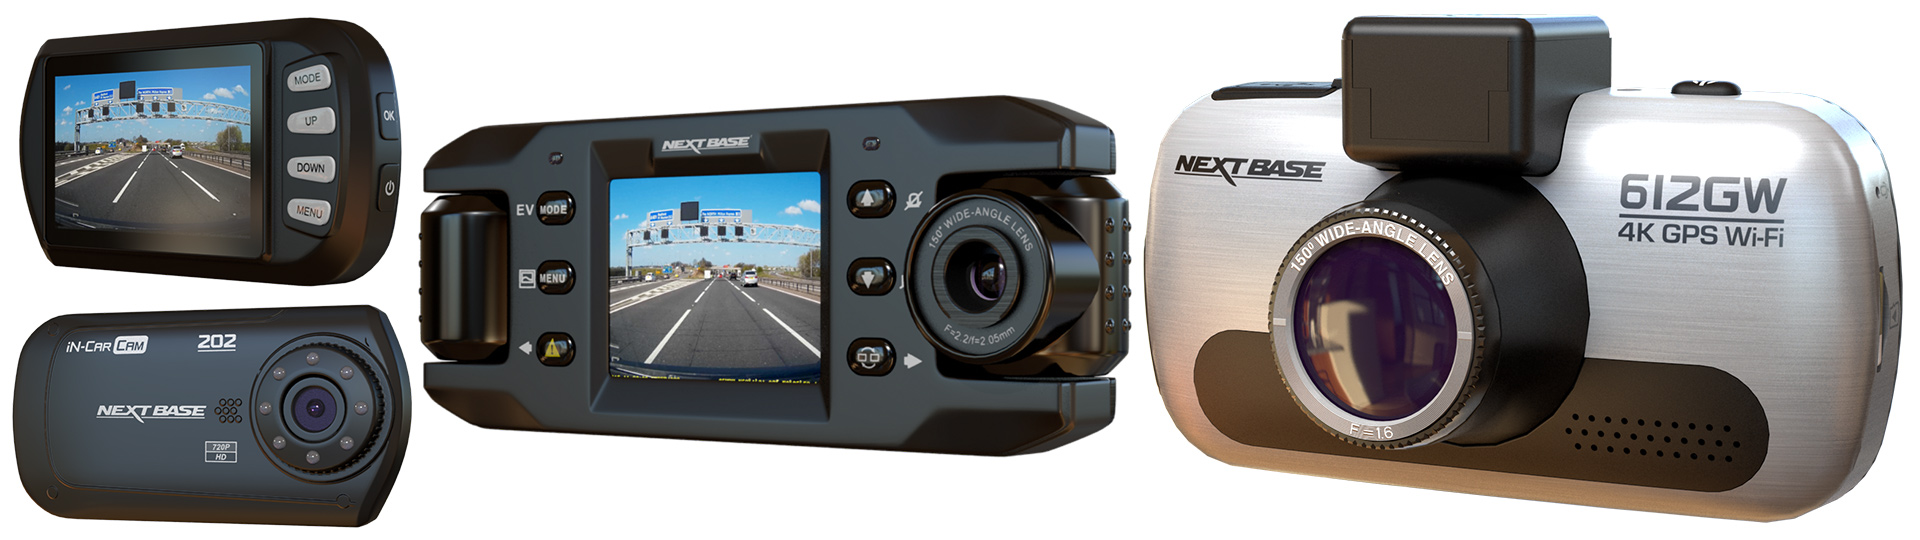 3D Product Visualization of Nextbase dashcams